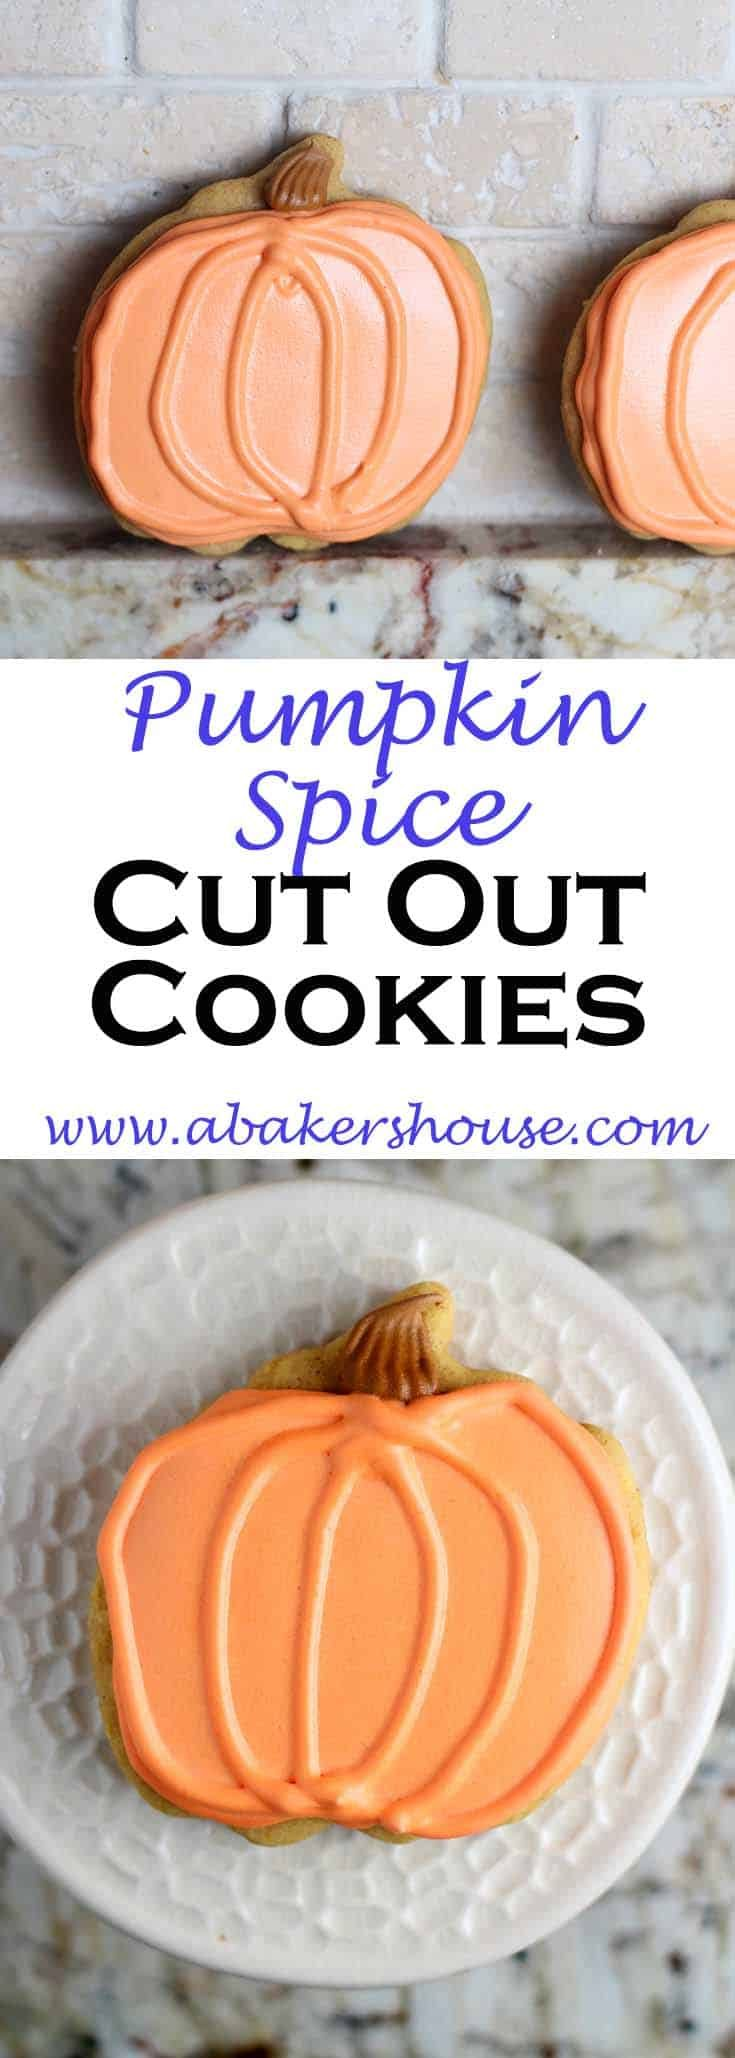 Pumpkin Spice Cut Out Cookies start with a basic cookie dough to which pumpkin spice is added. Cut them out then decorate with pumpkin colors and these are festive and fun for pumpkin season!#pumpkin #cookies #cutoutcookies